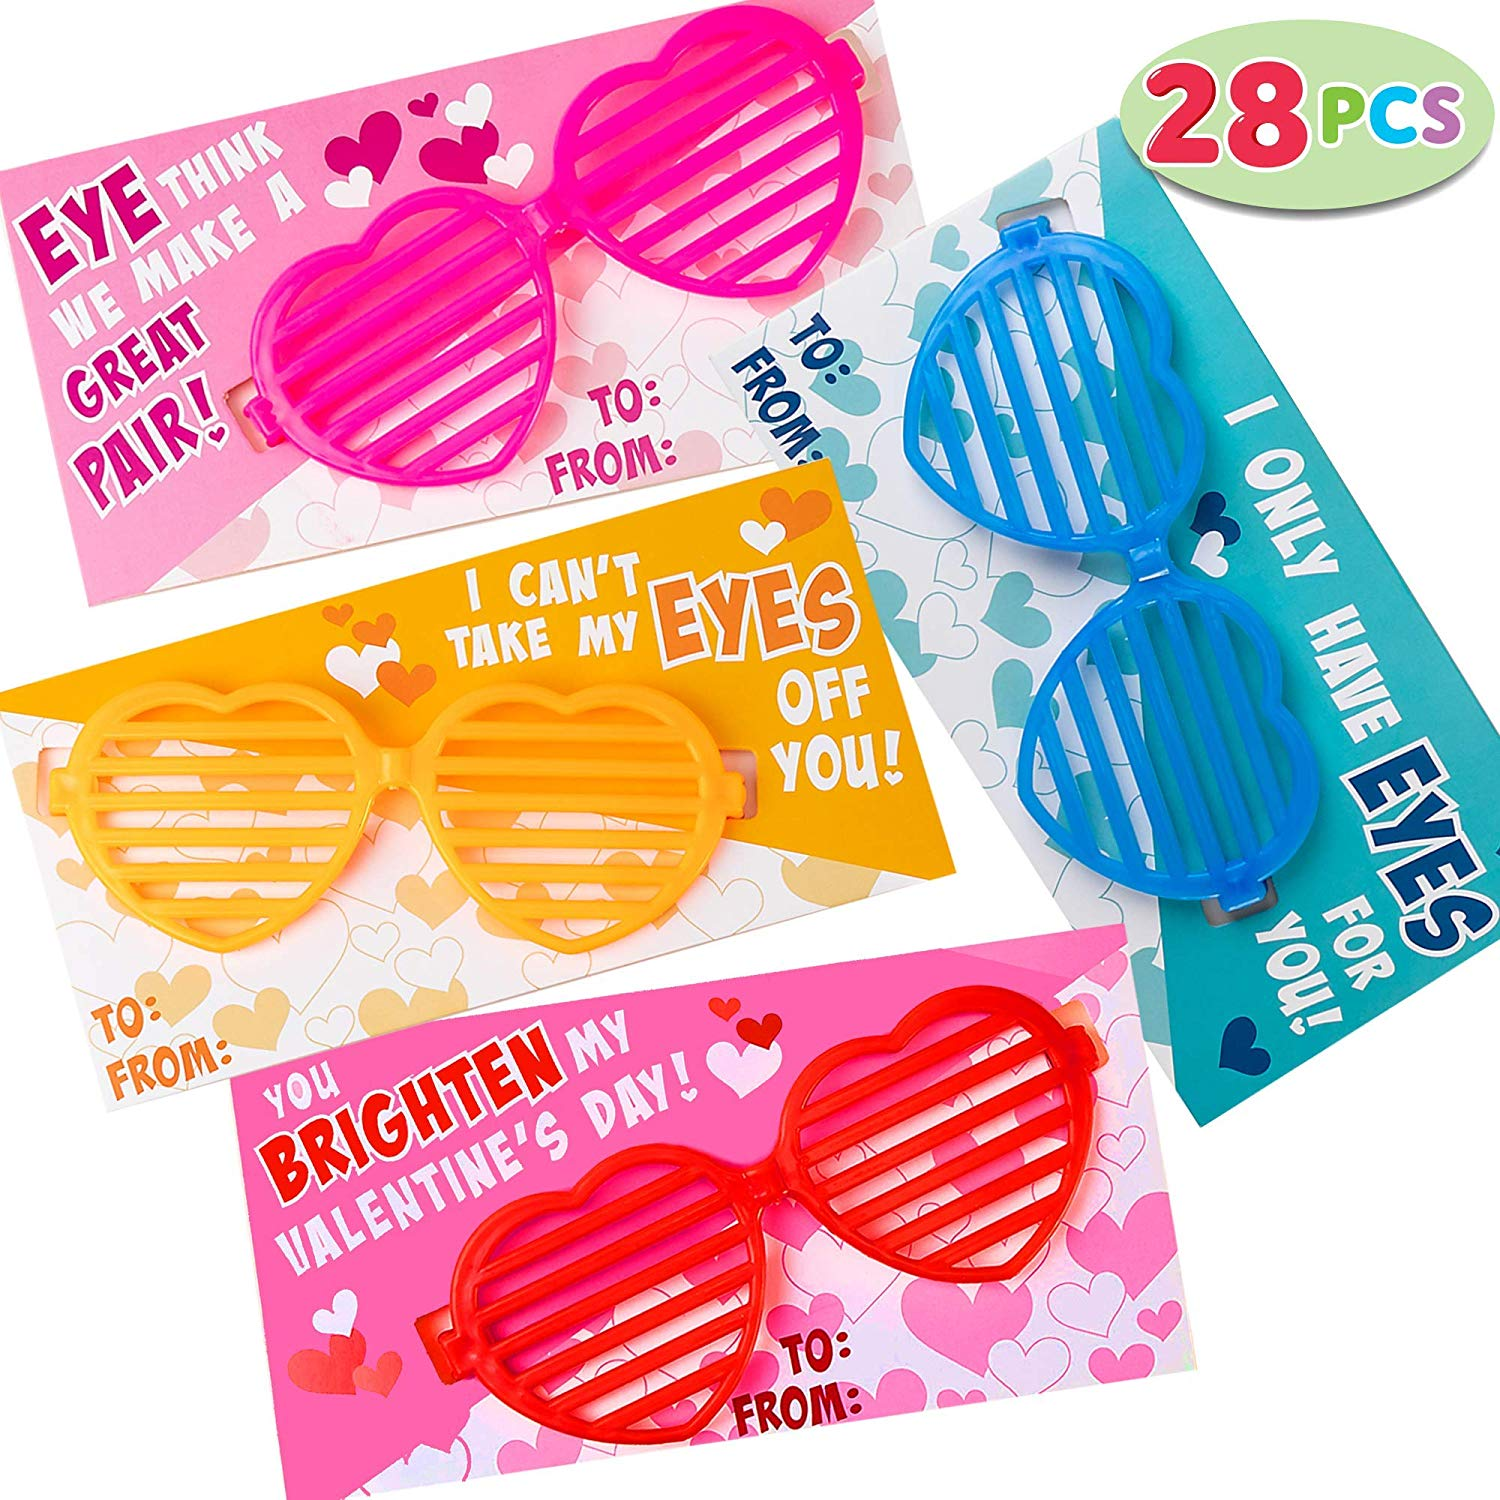 Valentine Gift Cards with Heart Shaped Shutter Shade